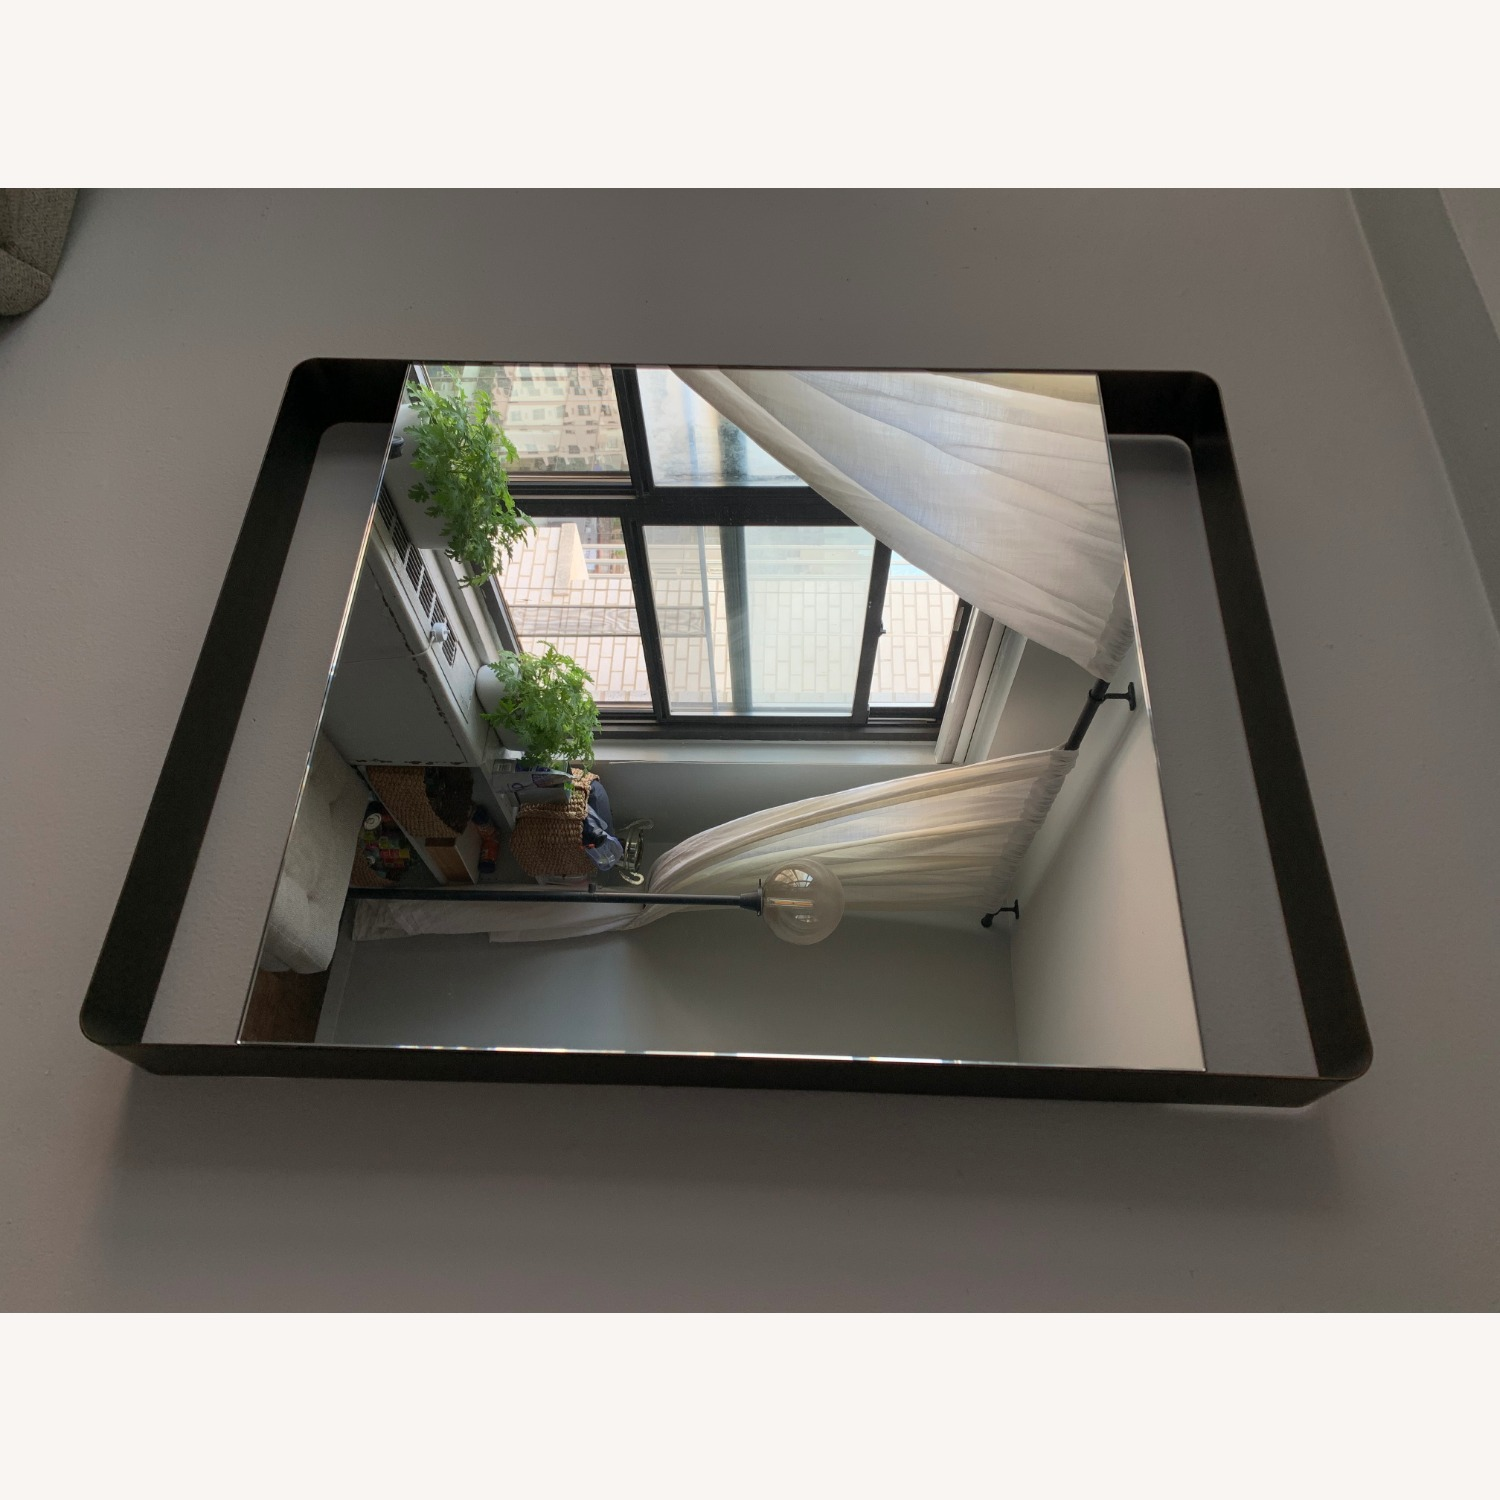 Crate & Barrel Colby Brass Mirror - image-5